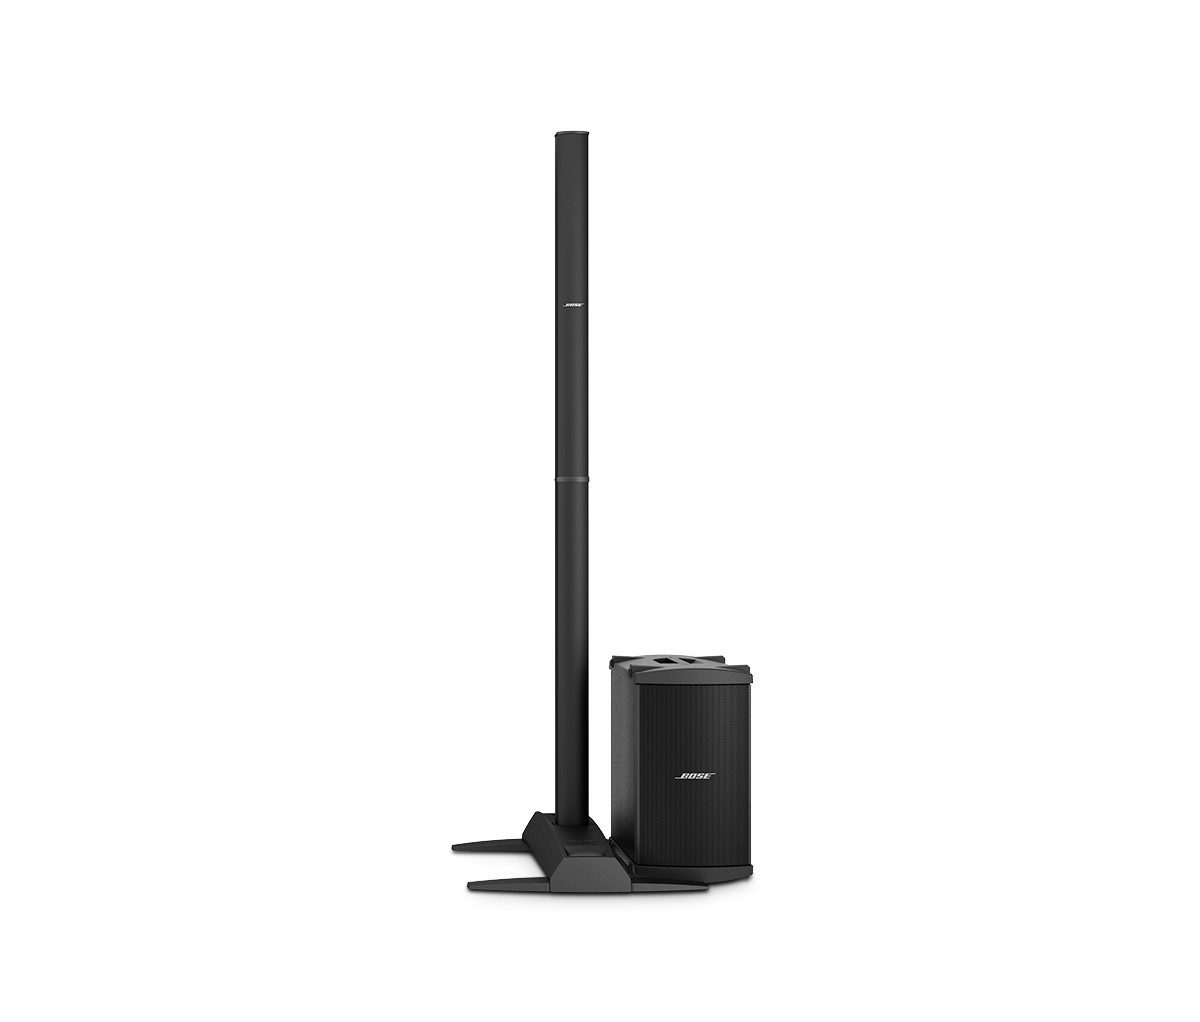 Bose Sound System >> Bose L1 Model Ii Portable Pa System With B2 Bass